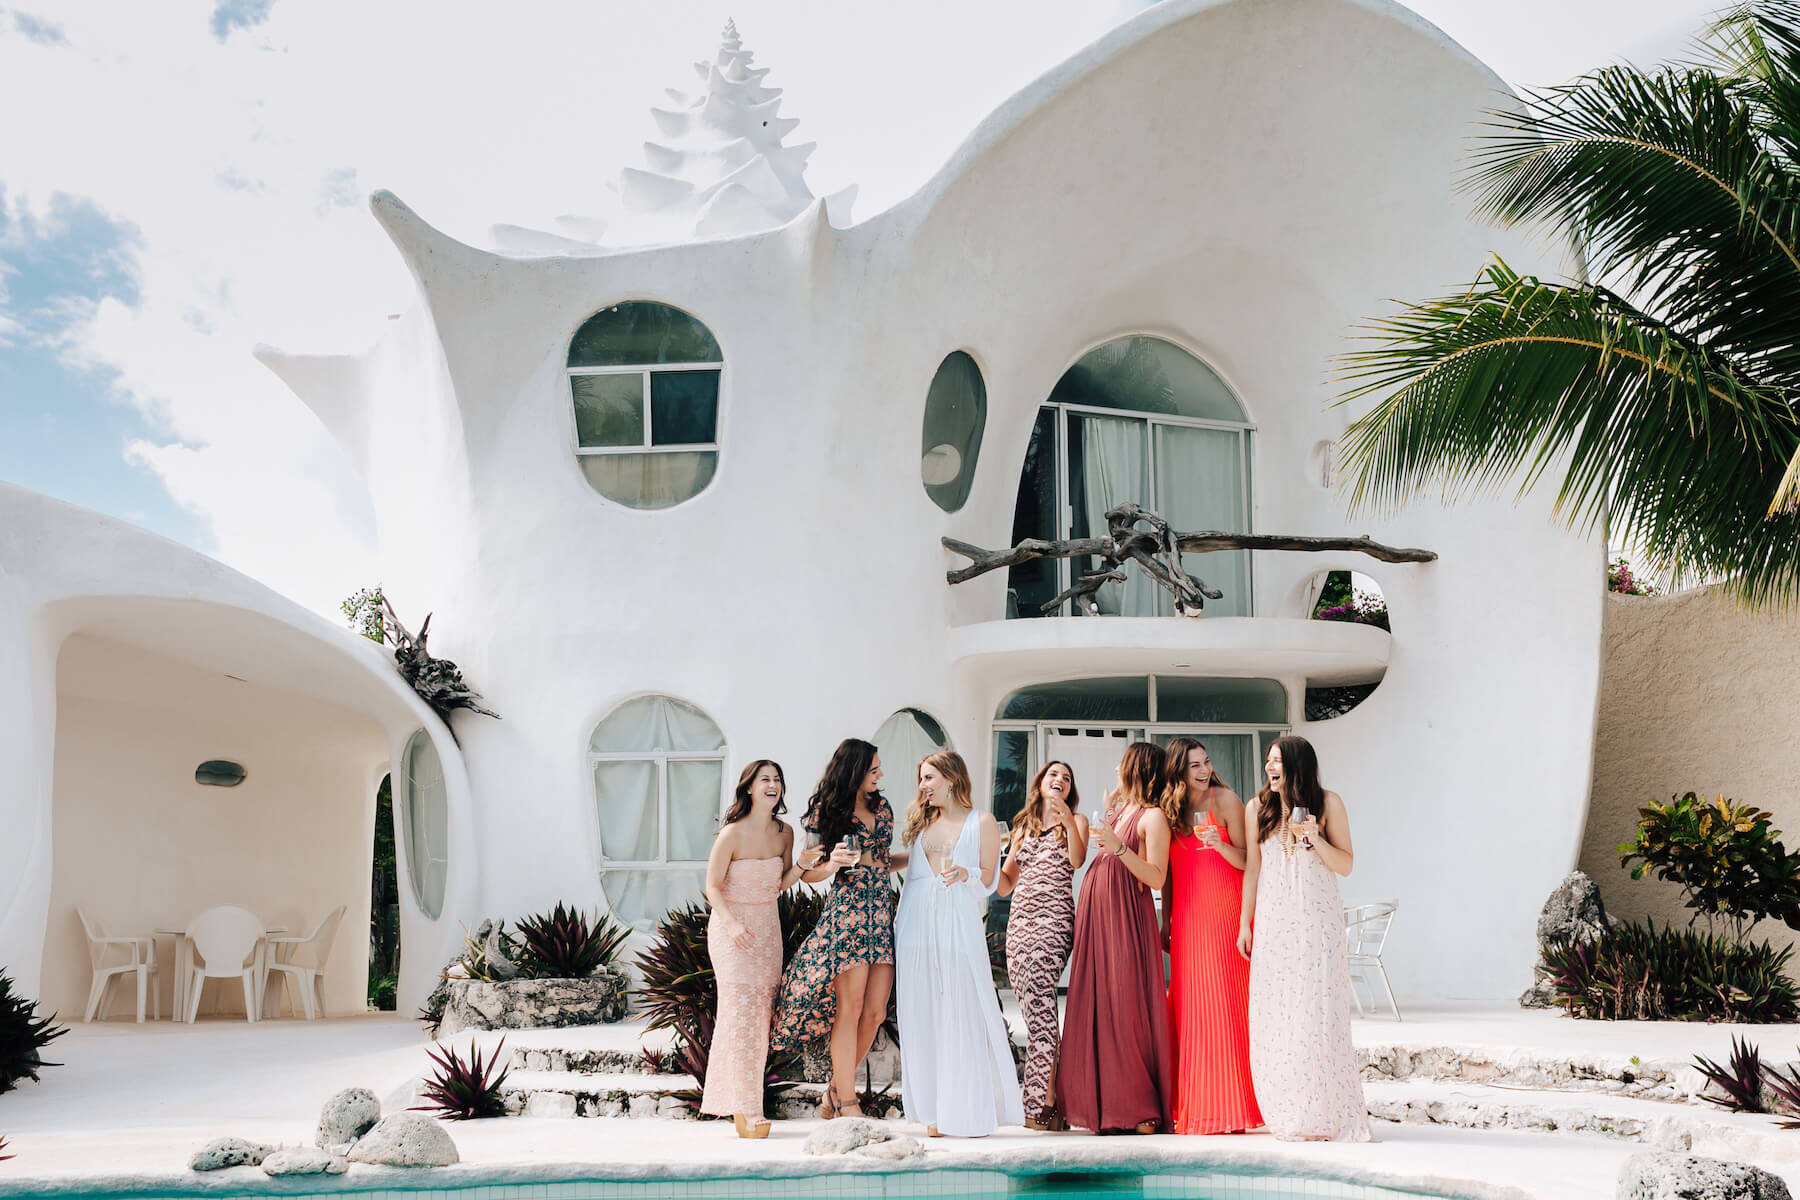 bachelorettes in Cancun, Mexico